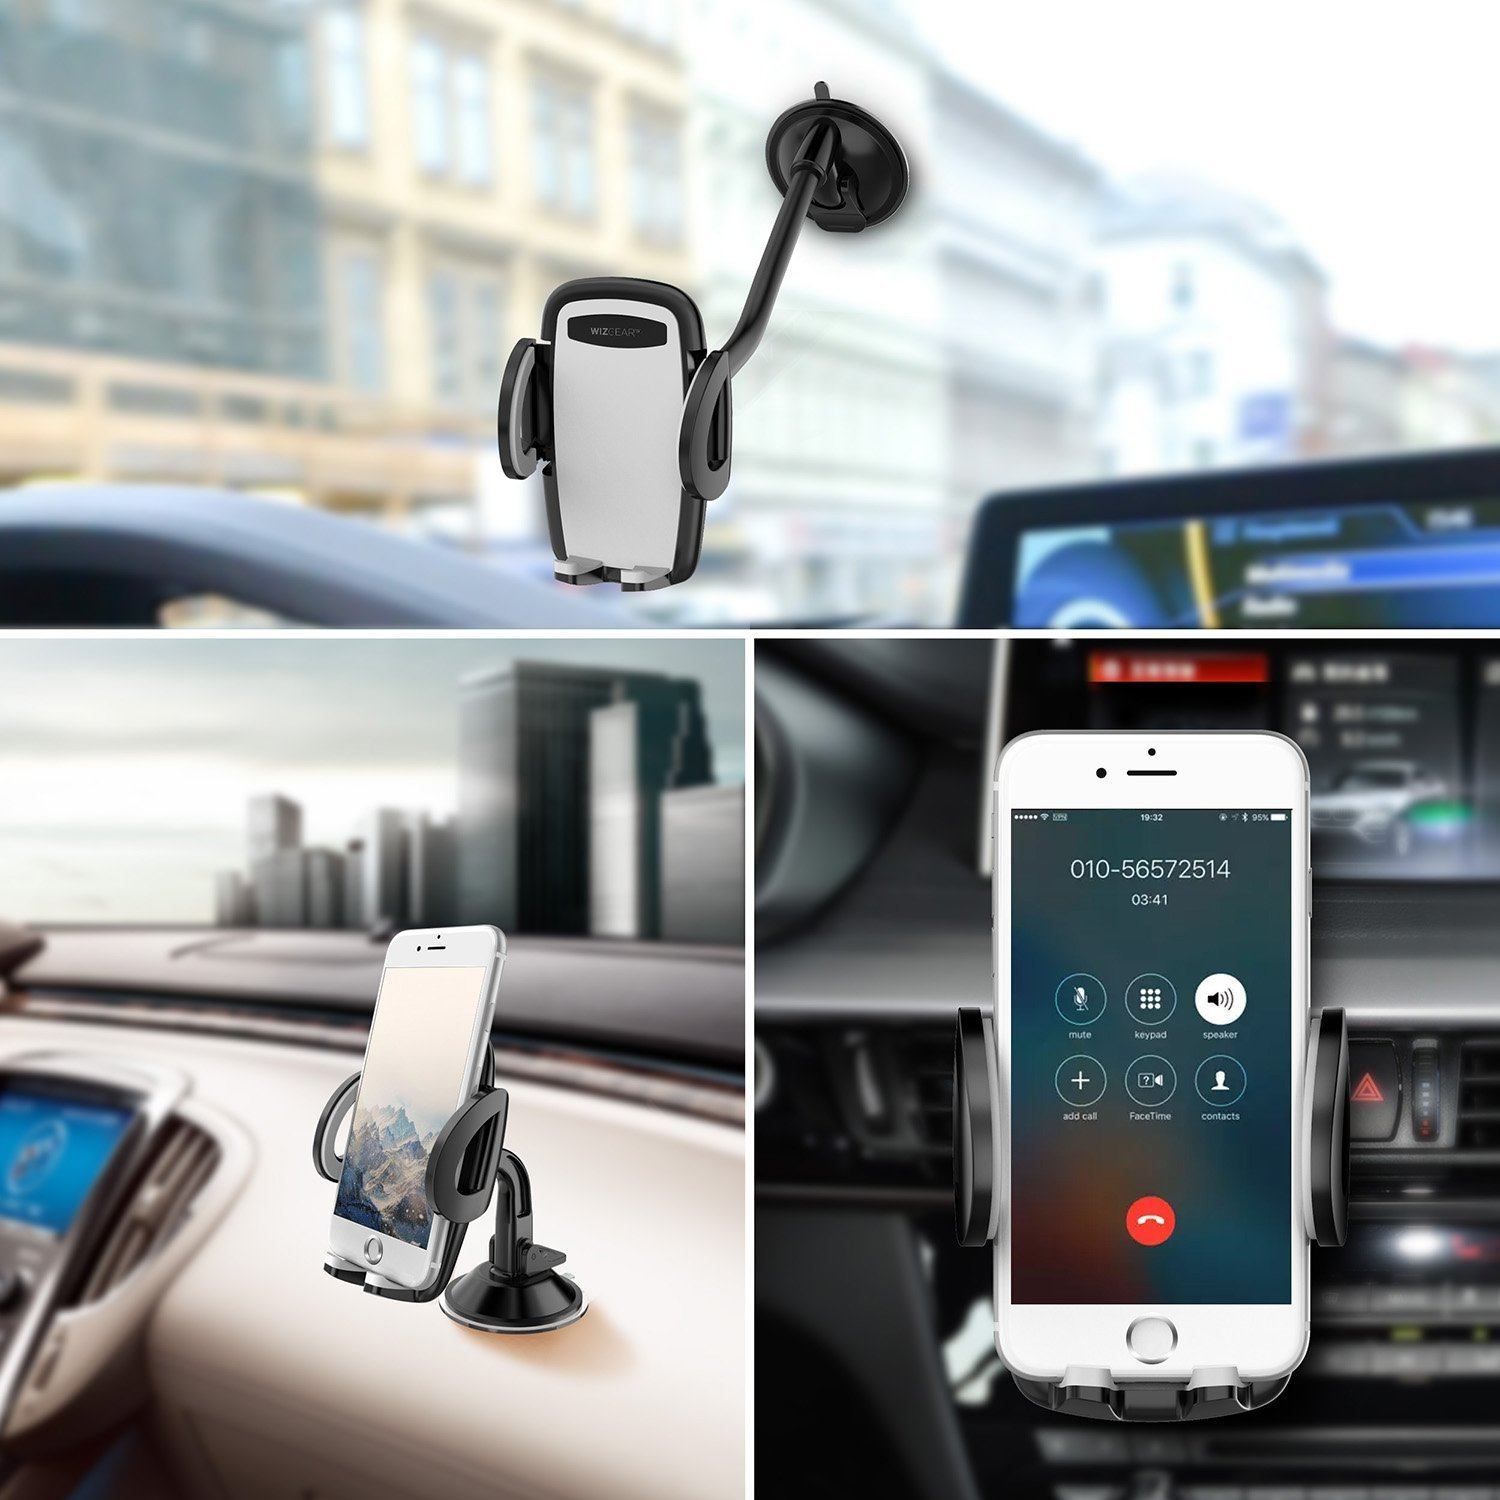 Cell Phone Car Mount Air Vent Holder with Dashboard Mount and Windshield Mount for Cell Phones Phone Holder for Car WizGear 3-in-1 Universal Car Phone Mount